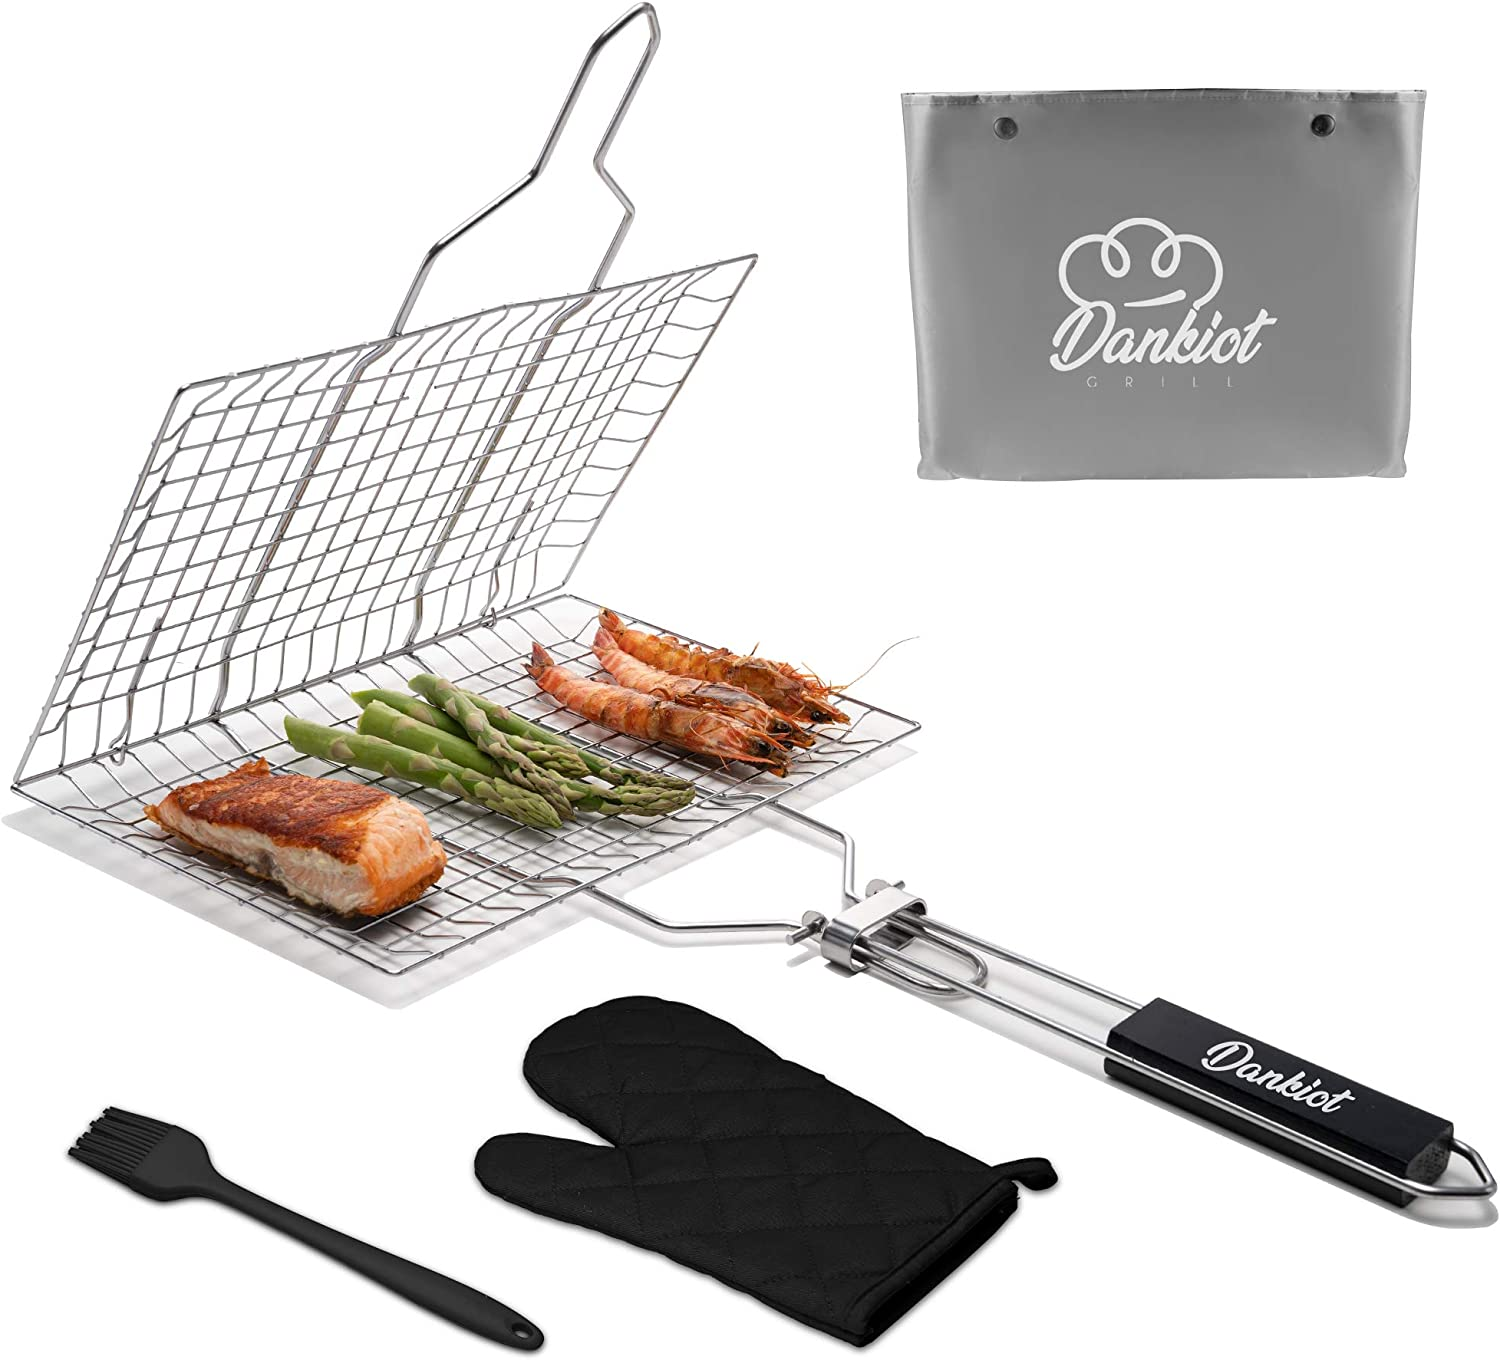 Dankiot Grill Basket for Outdoor Grilling Grill Basket for Vegetables, Fish, Meat, with Grilling Rack Glove and Basting Brush